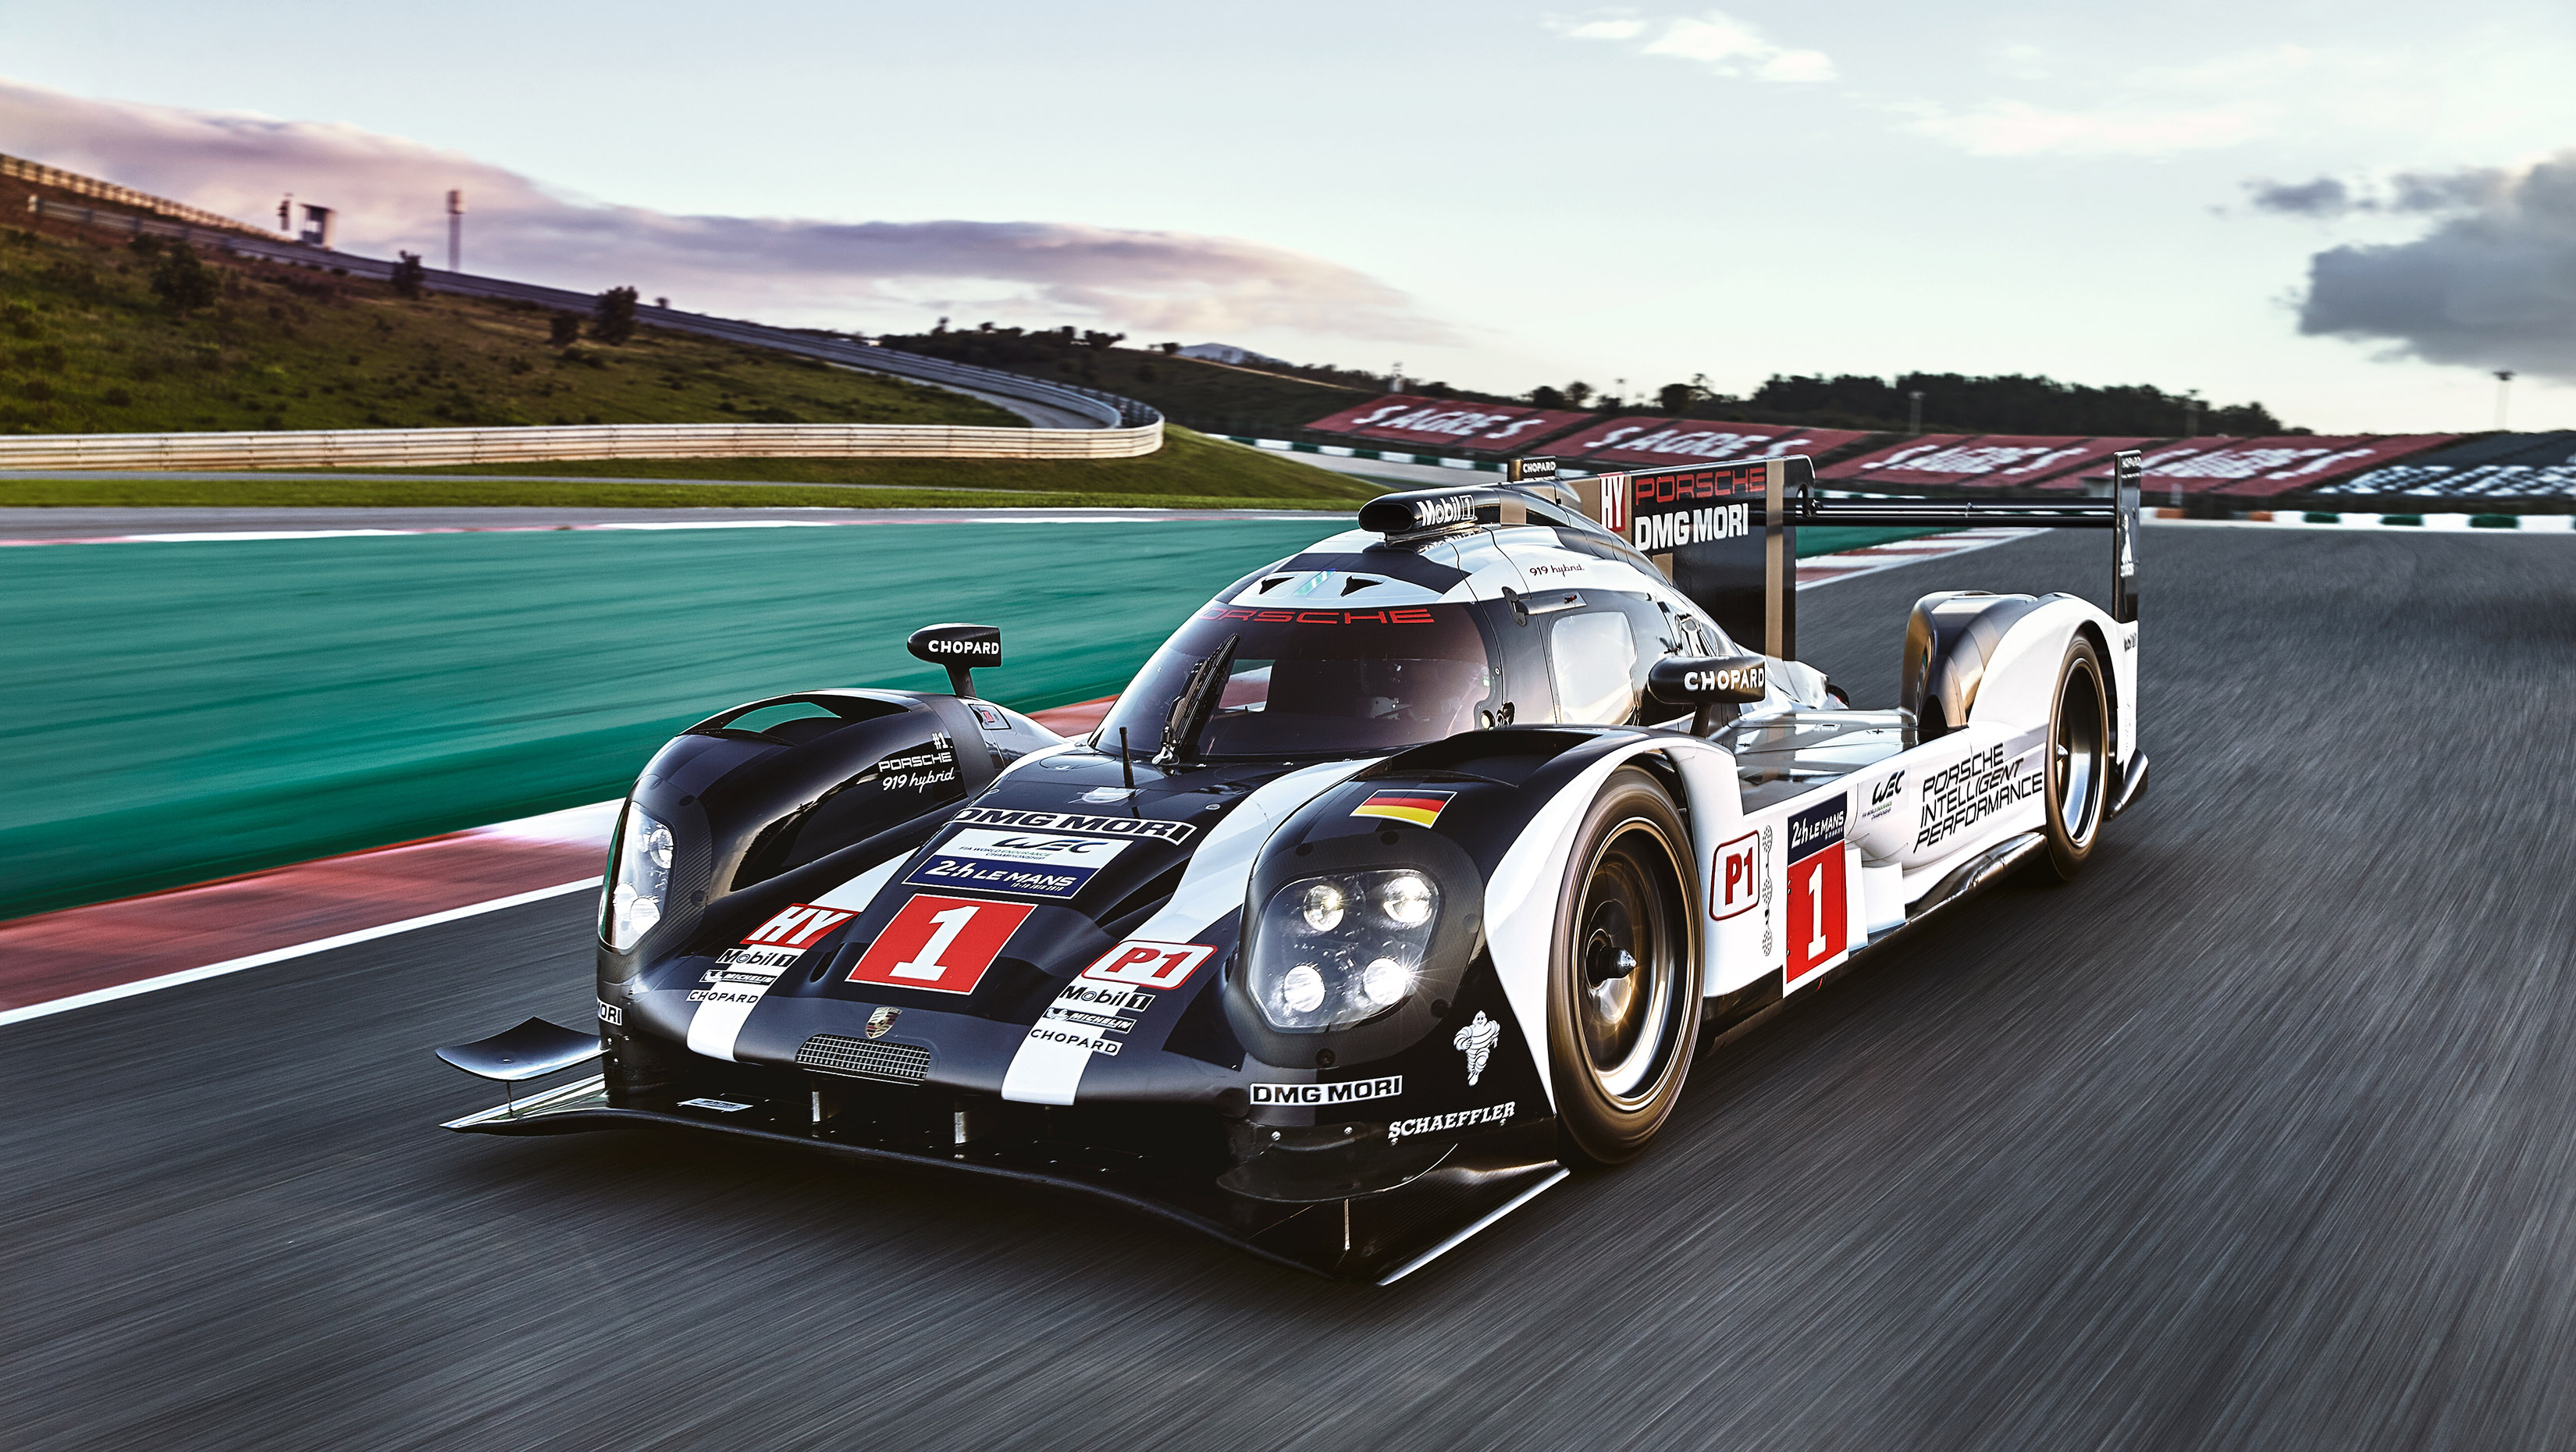 2016 porsche 919 hybrid lmp1 race car packs 900 horsepower autoevolution. Black Bedroom Furniture Sets. Home Design Ideas